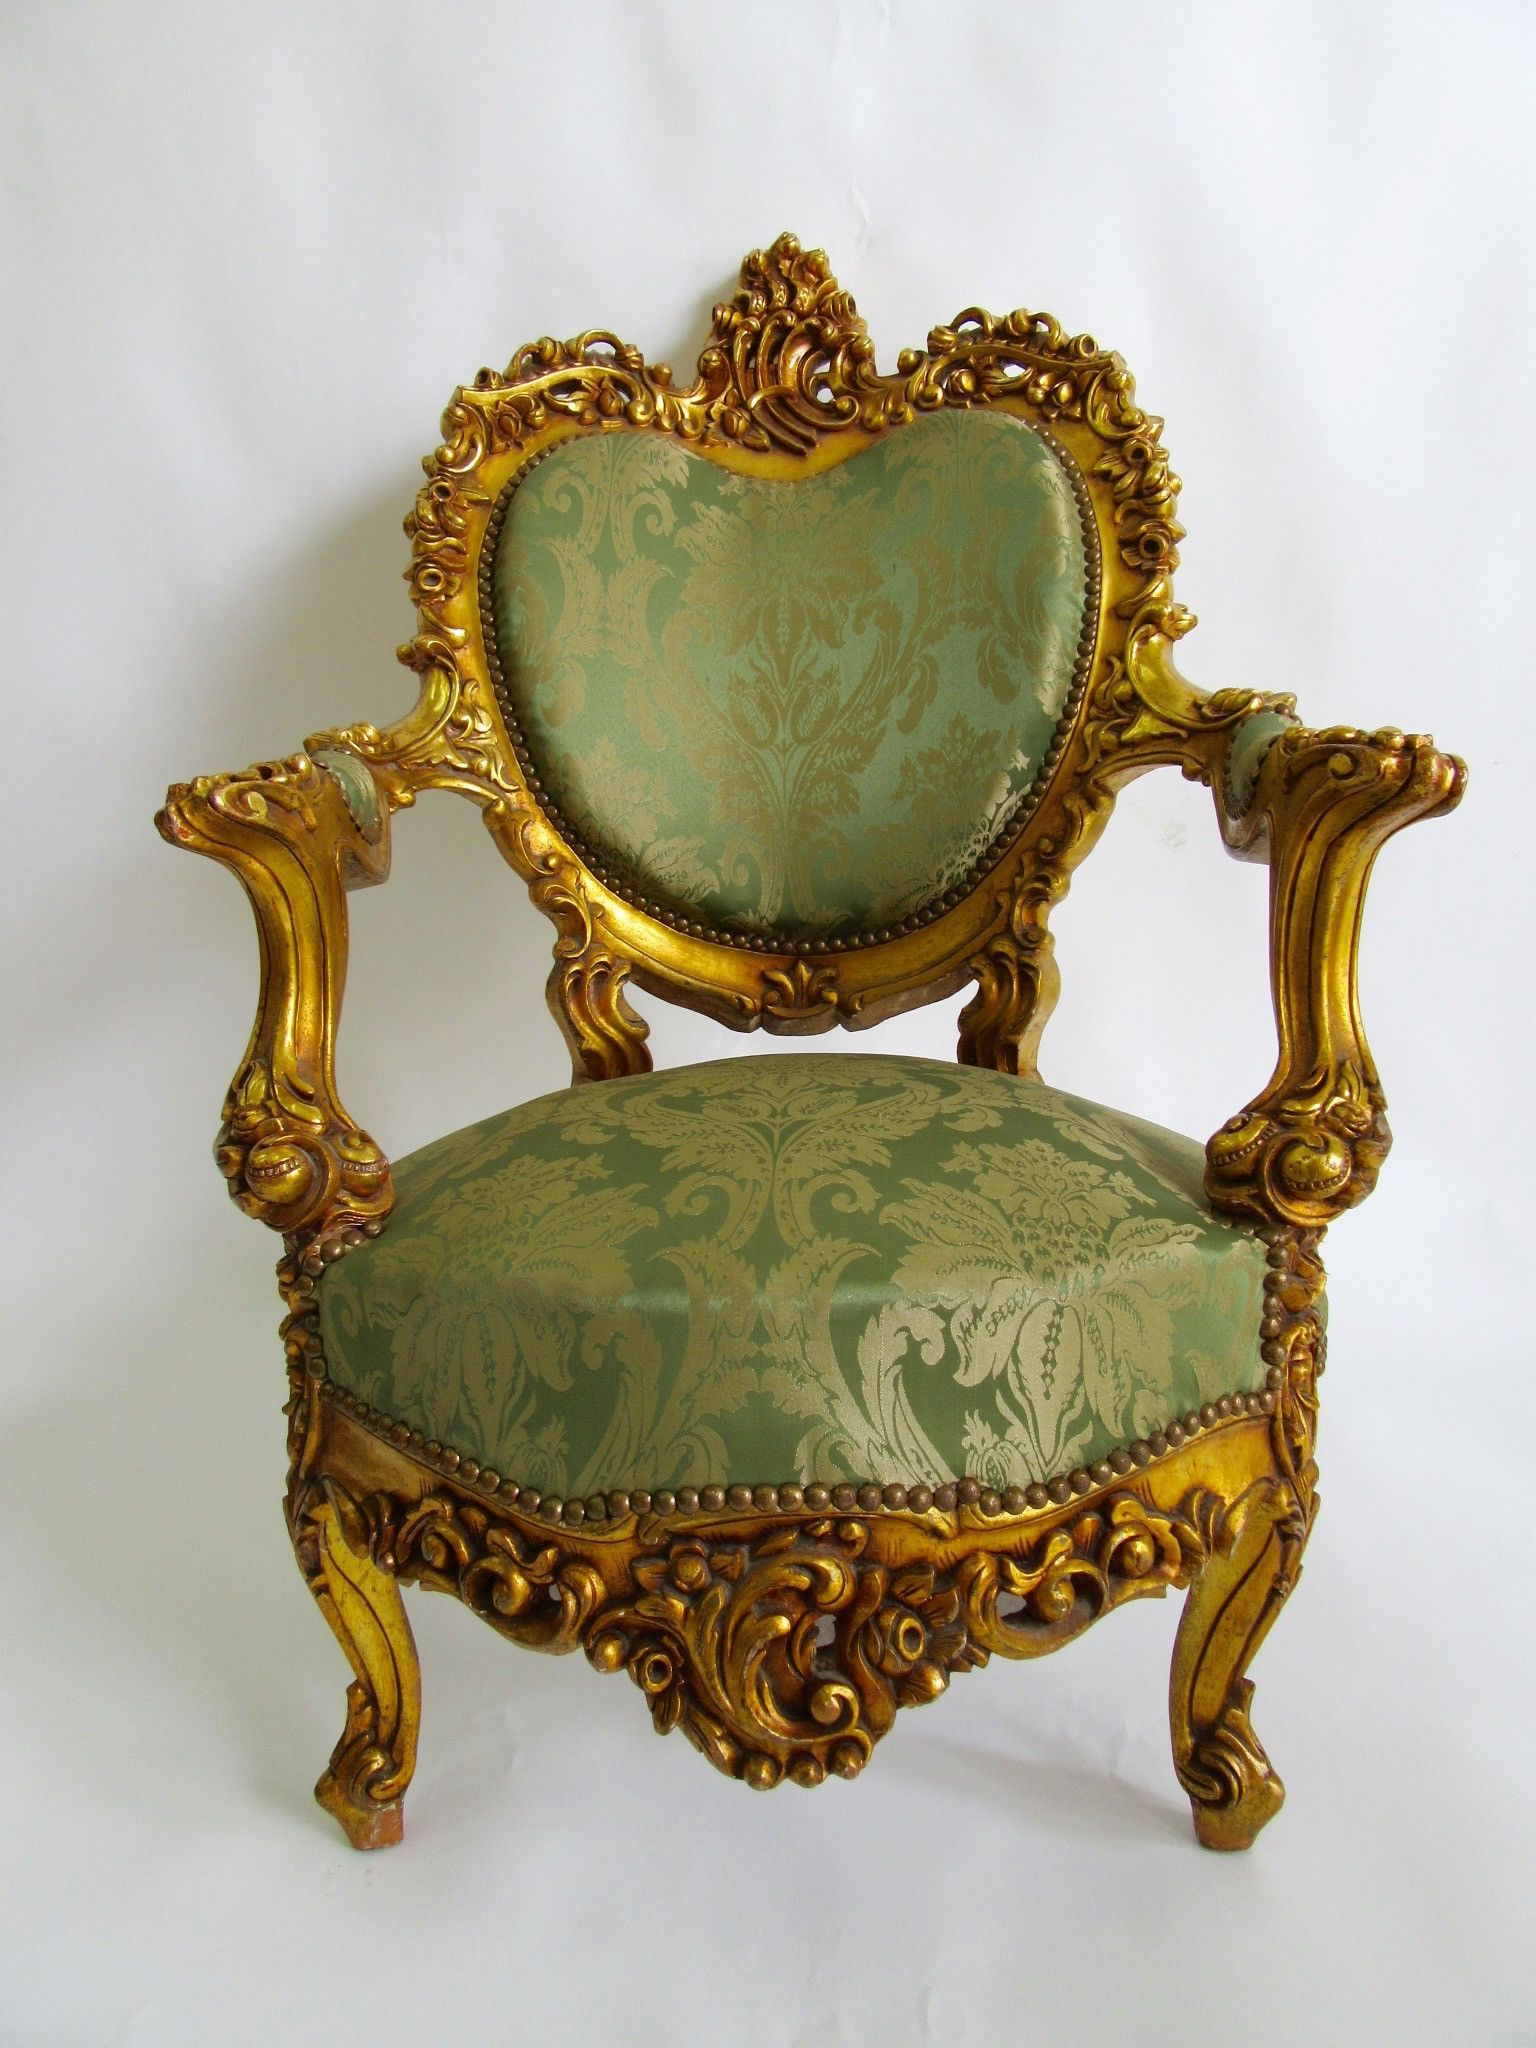 Baroque Antique French Style Rococo Chair Green and Gold $675